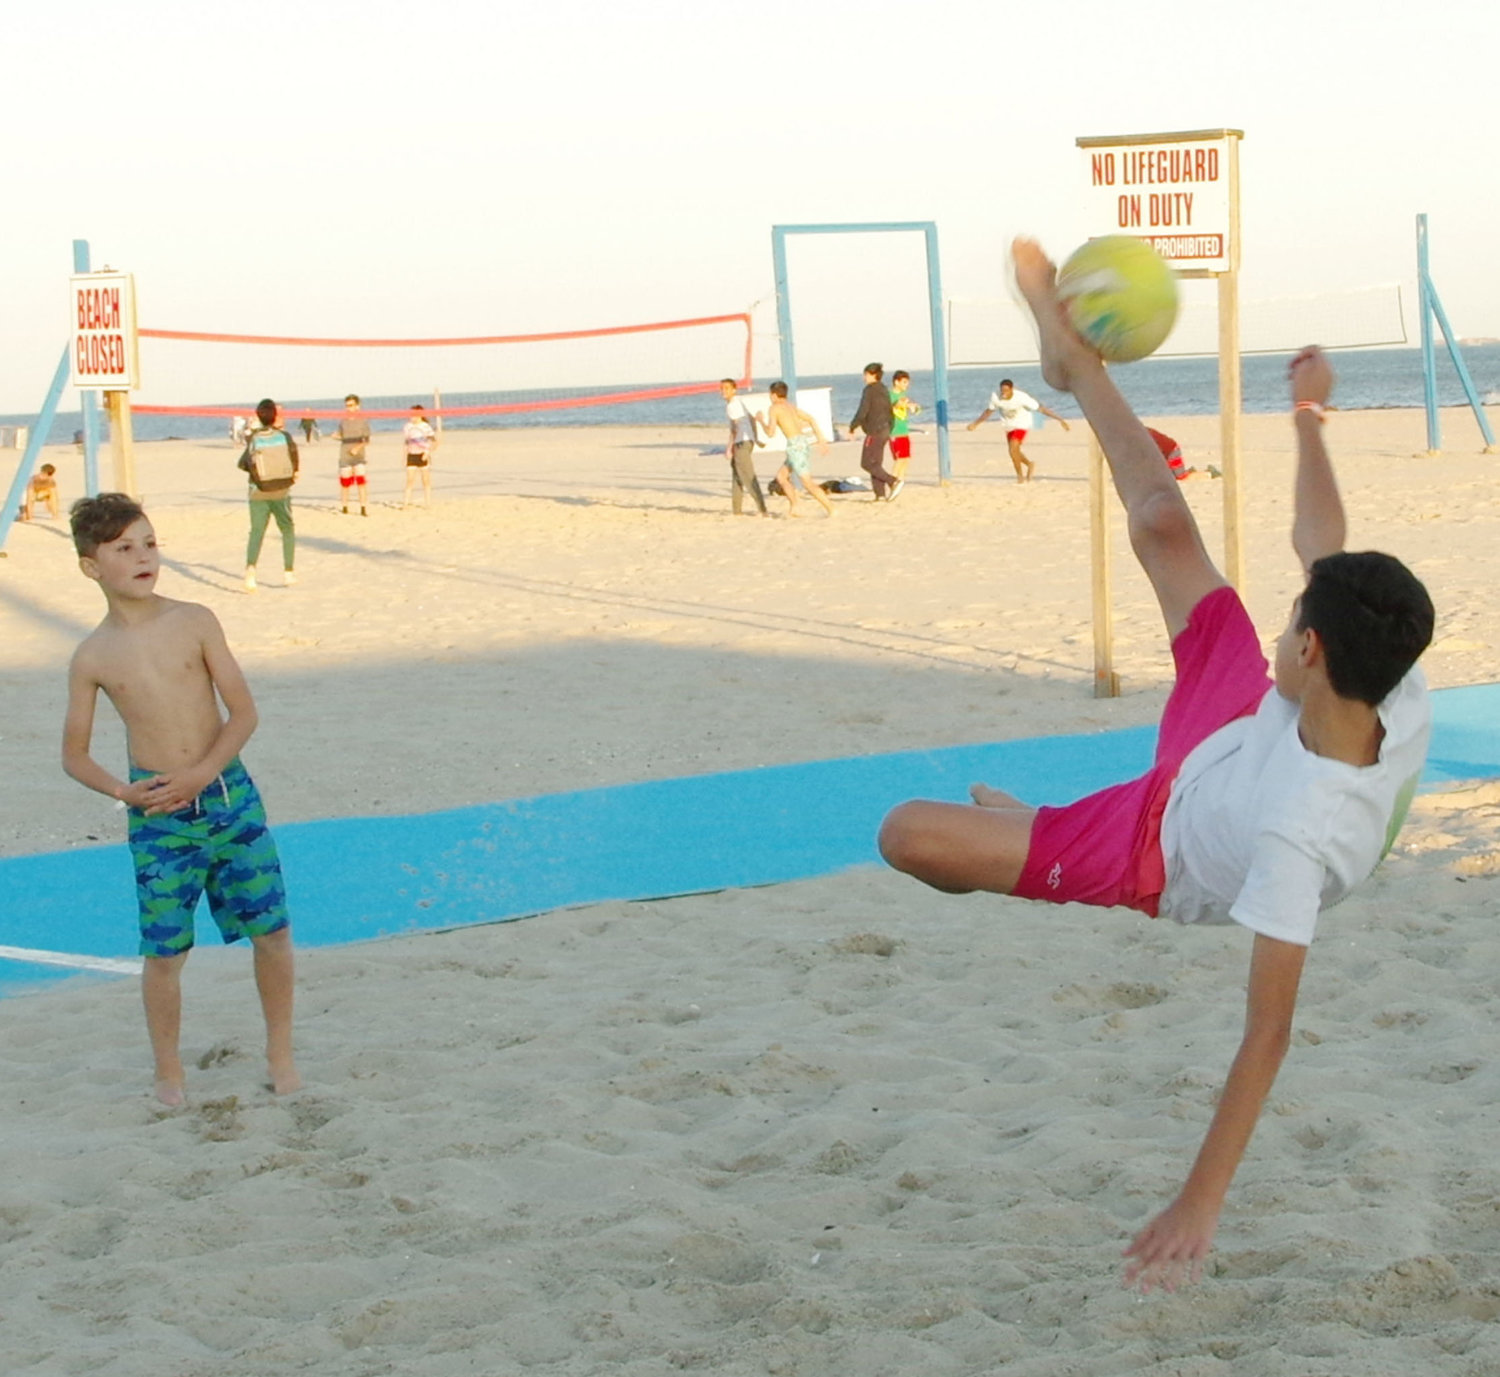 Kfir Halfon, 11, did not need a lifeguard to show off his impersonation of Pelé.